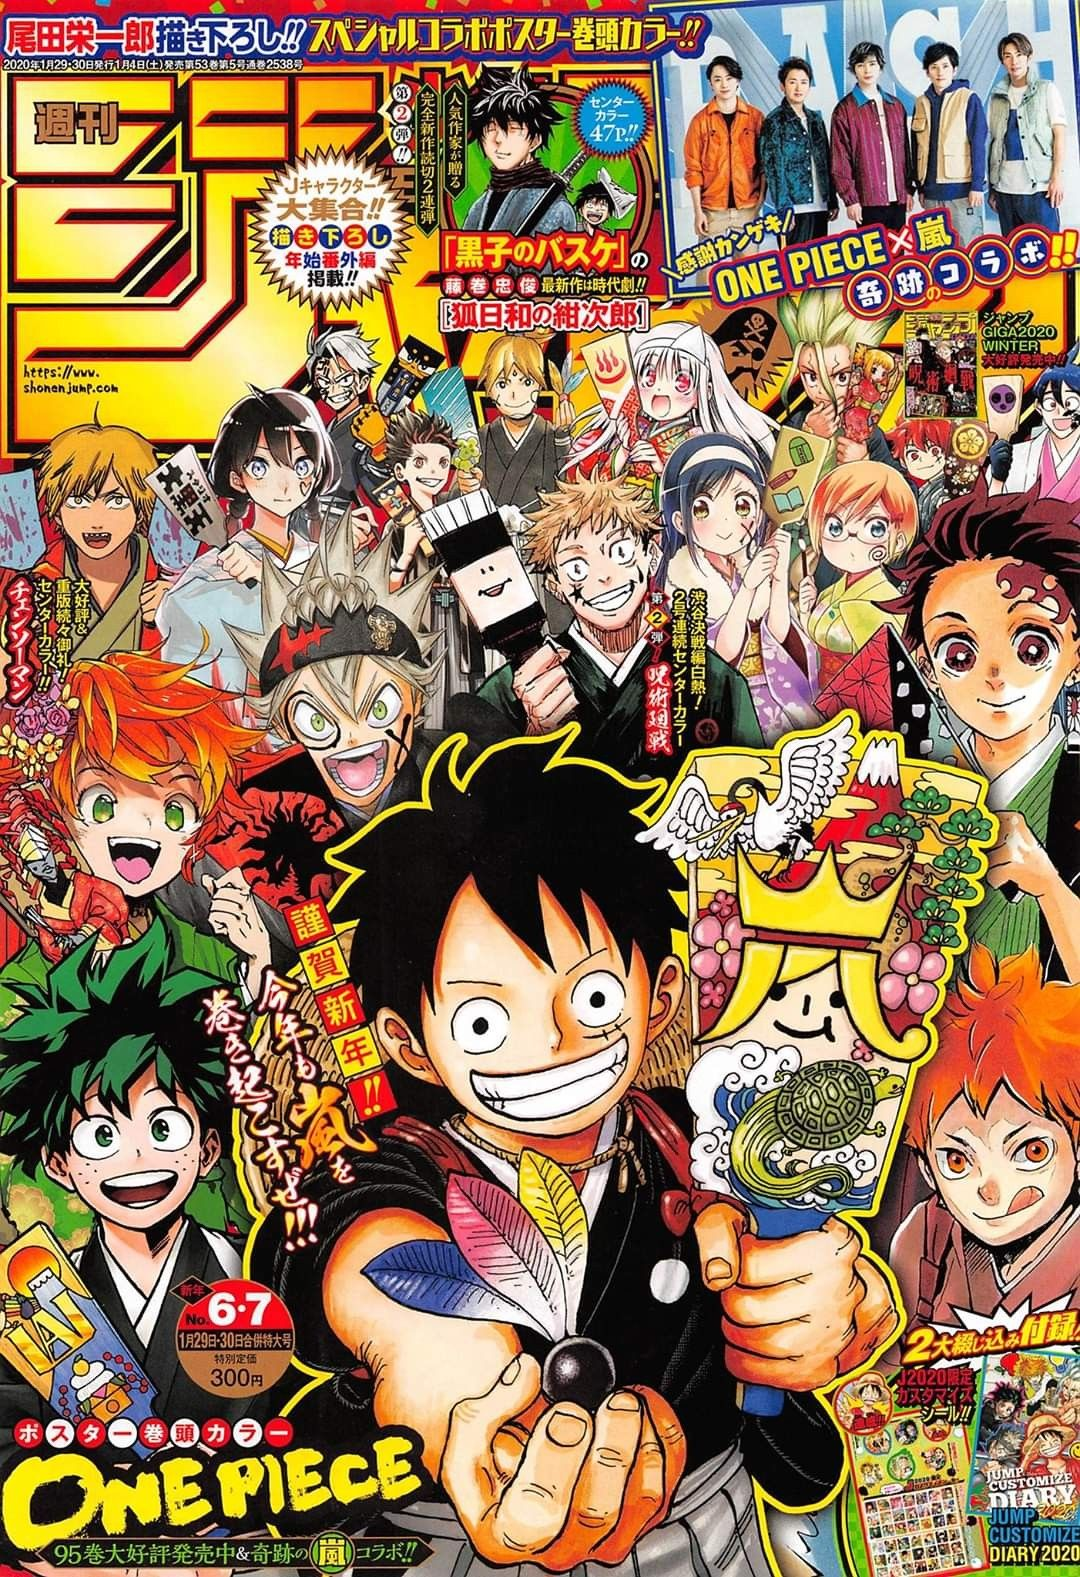 Weekly Shonen Jump Issue 67, 2020 in 2020 Anime